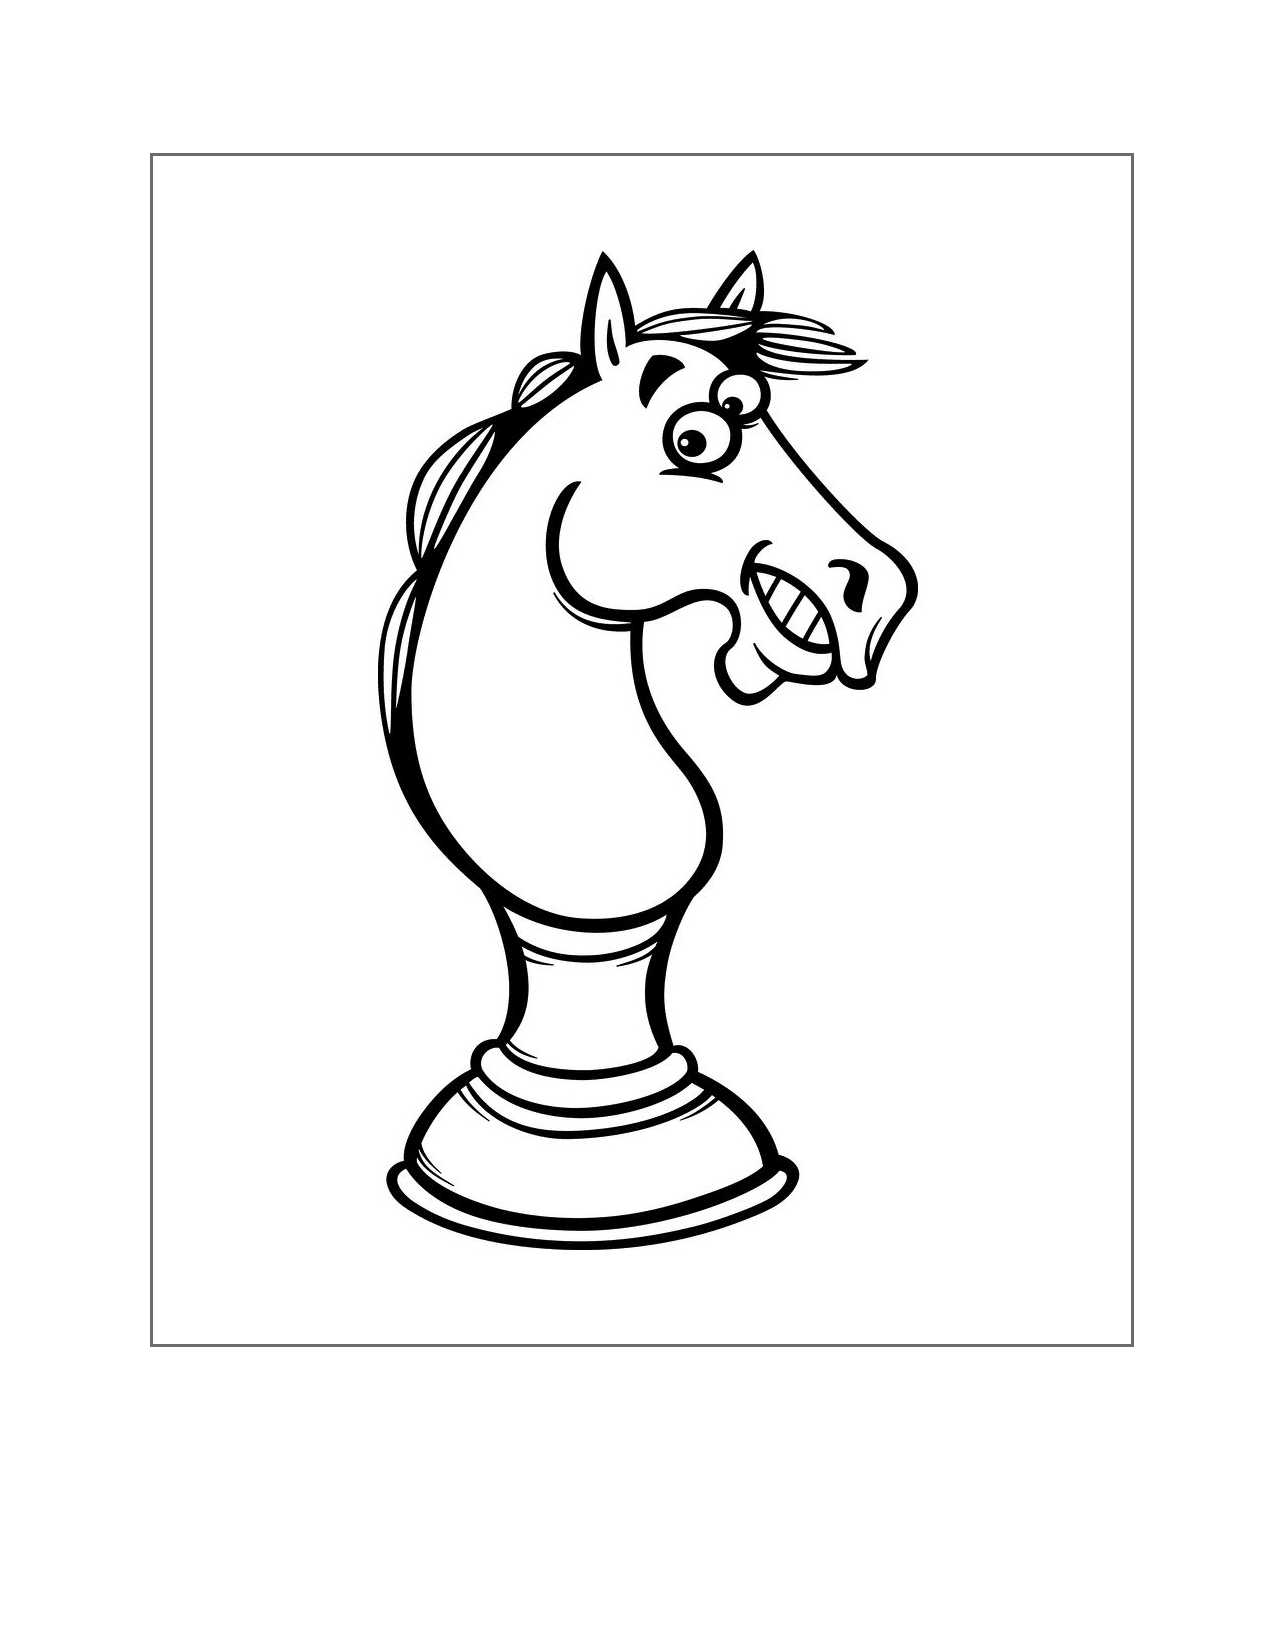 Funny Chess Knight Horse Coloring Page